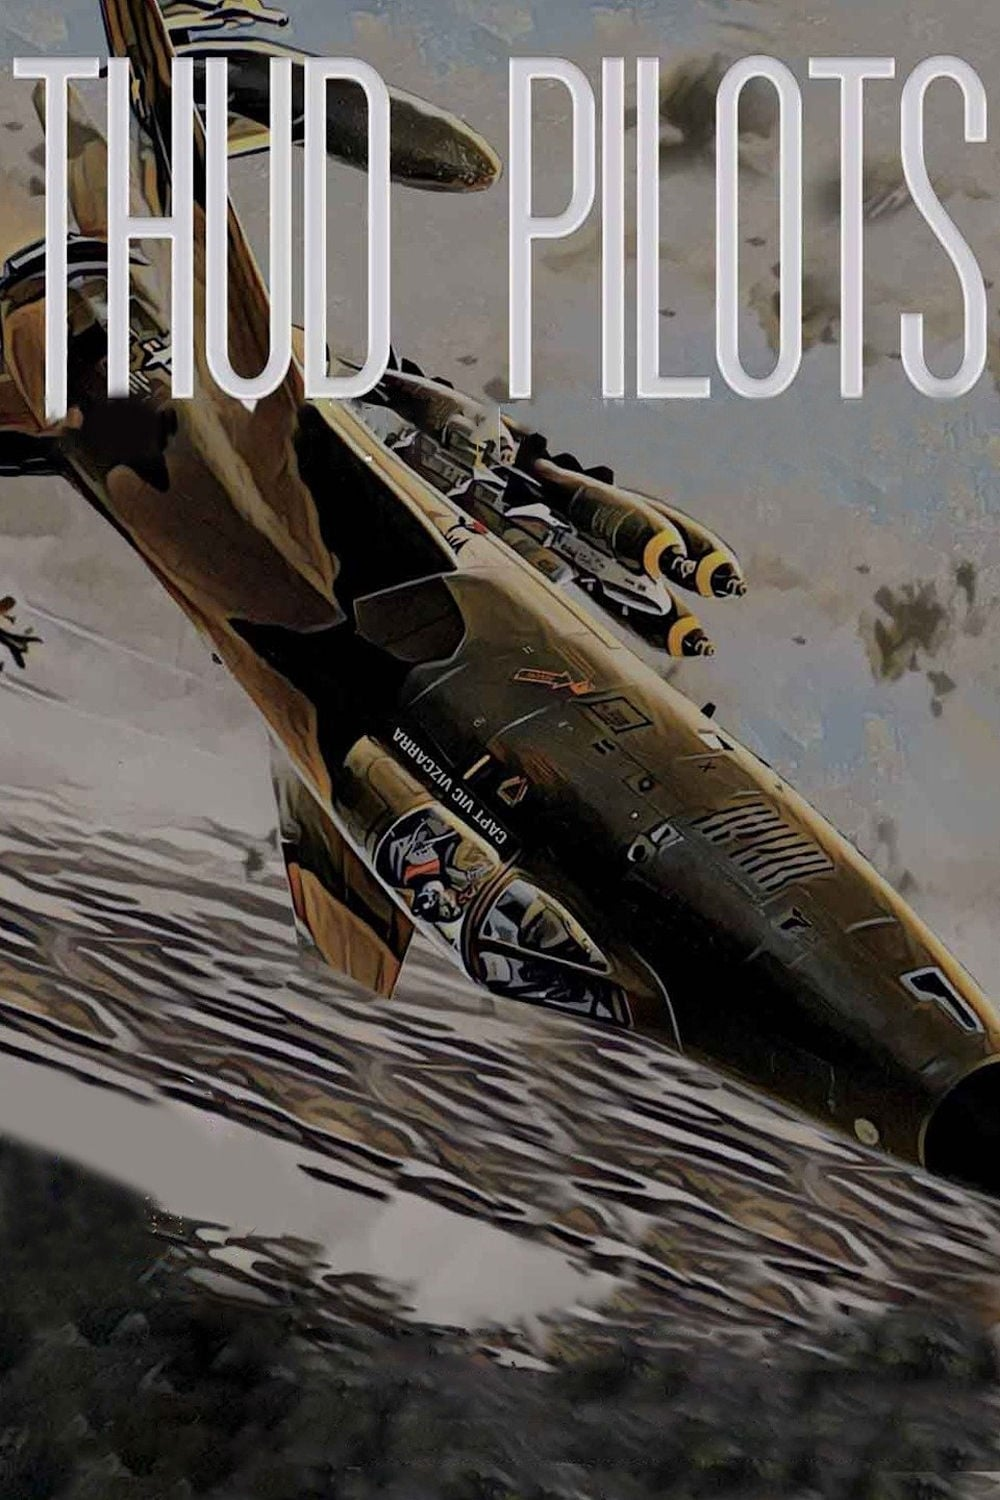 Thud Pilots on FREECABLE TV